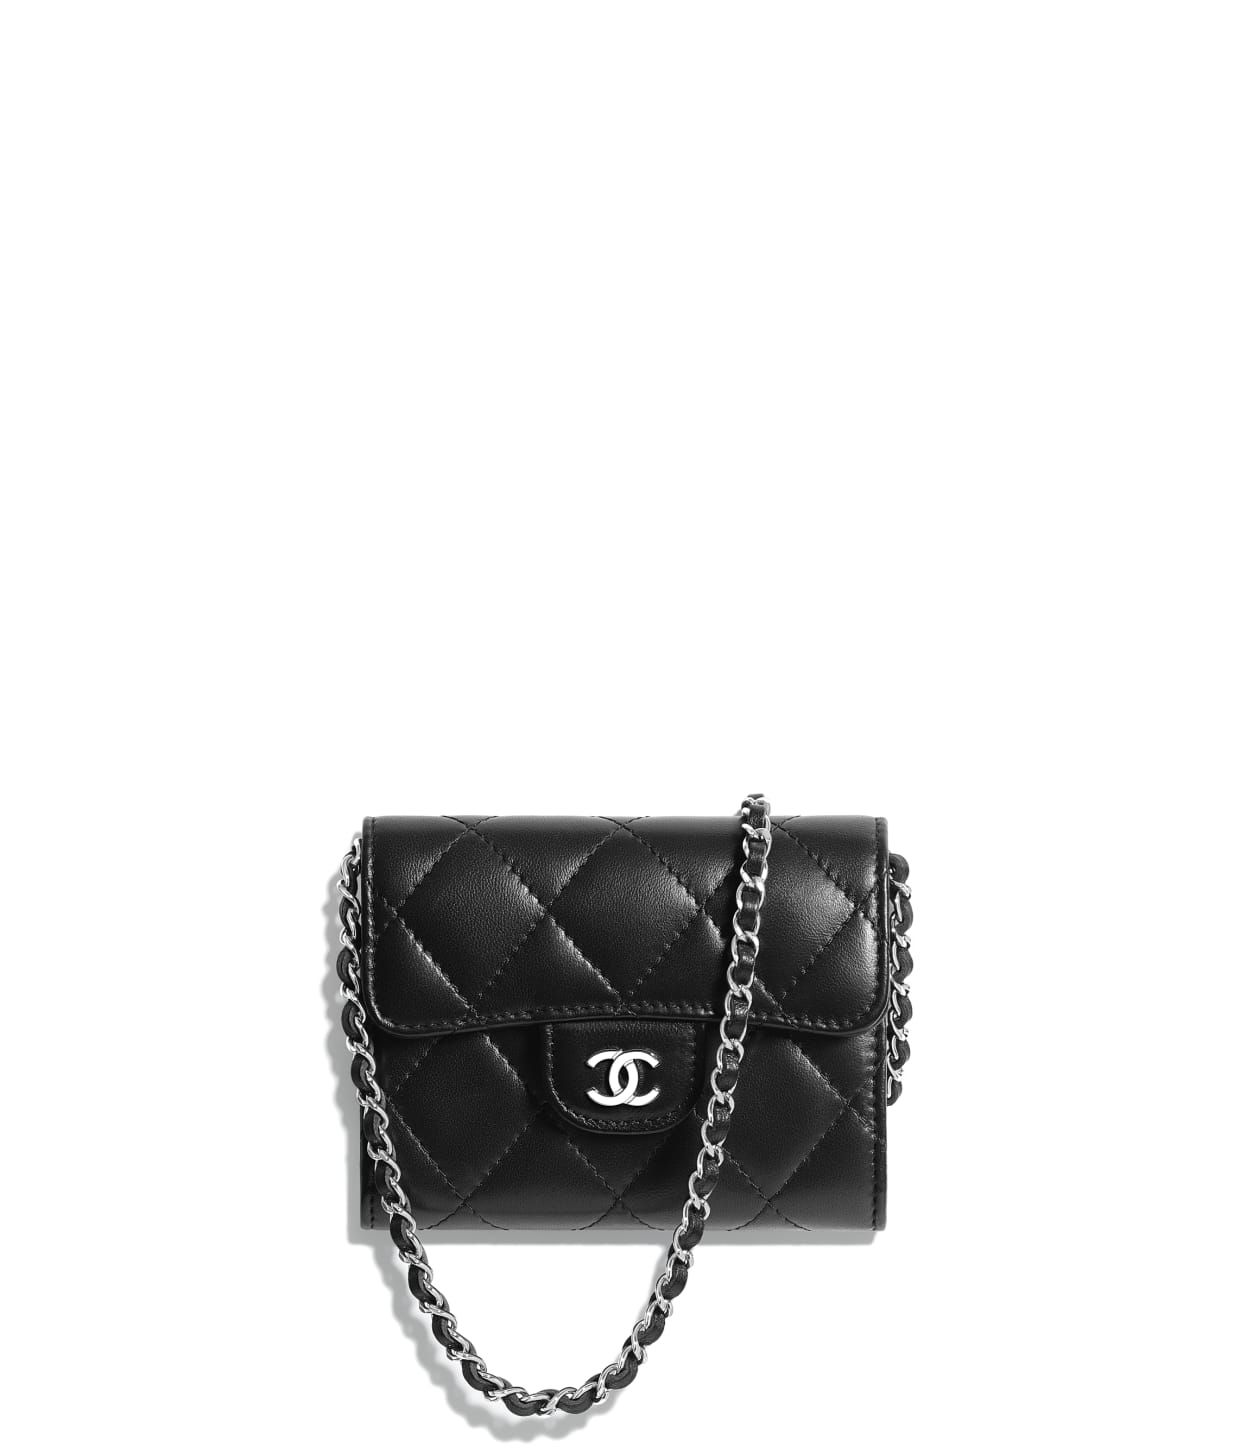 4652d807aa6 Discover the CHANEL Lambskin   Silver-Tone Metal Black Classic Clutch with  Chain